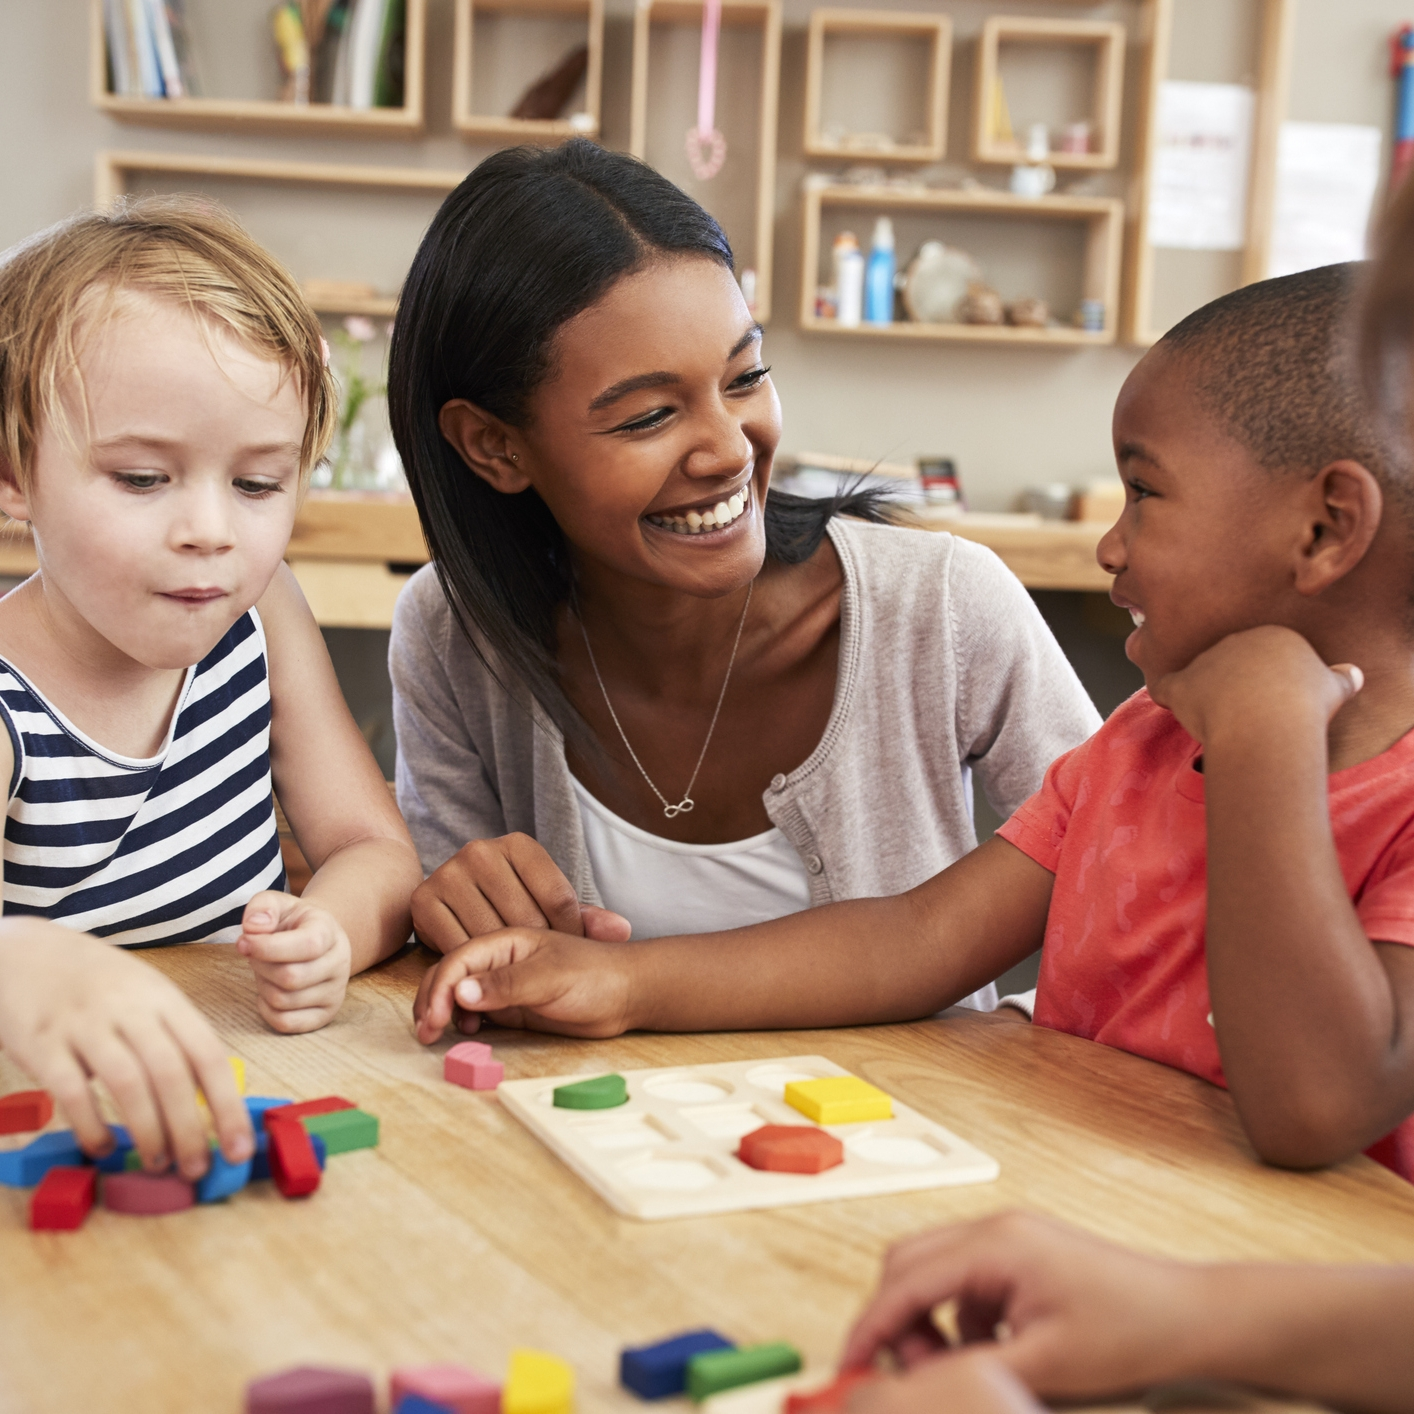 2. Regulation: Students need regulating relationships and supportive environments. -